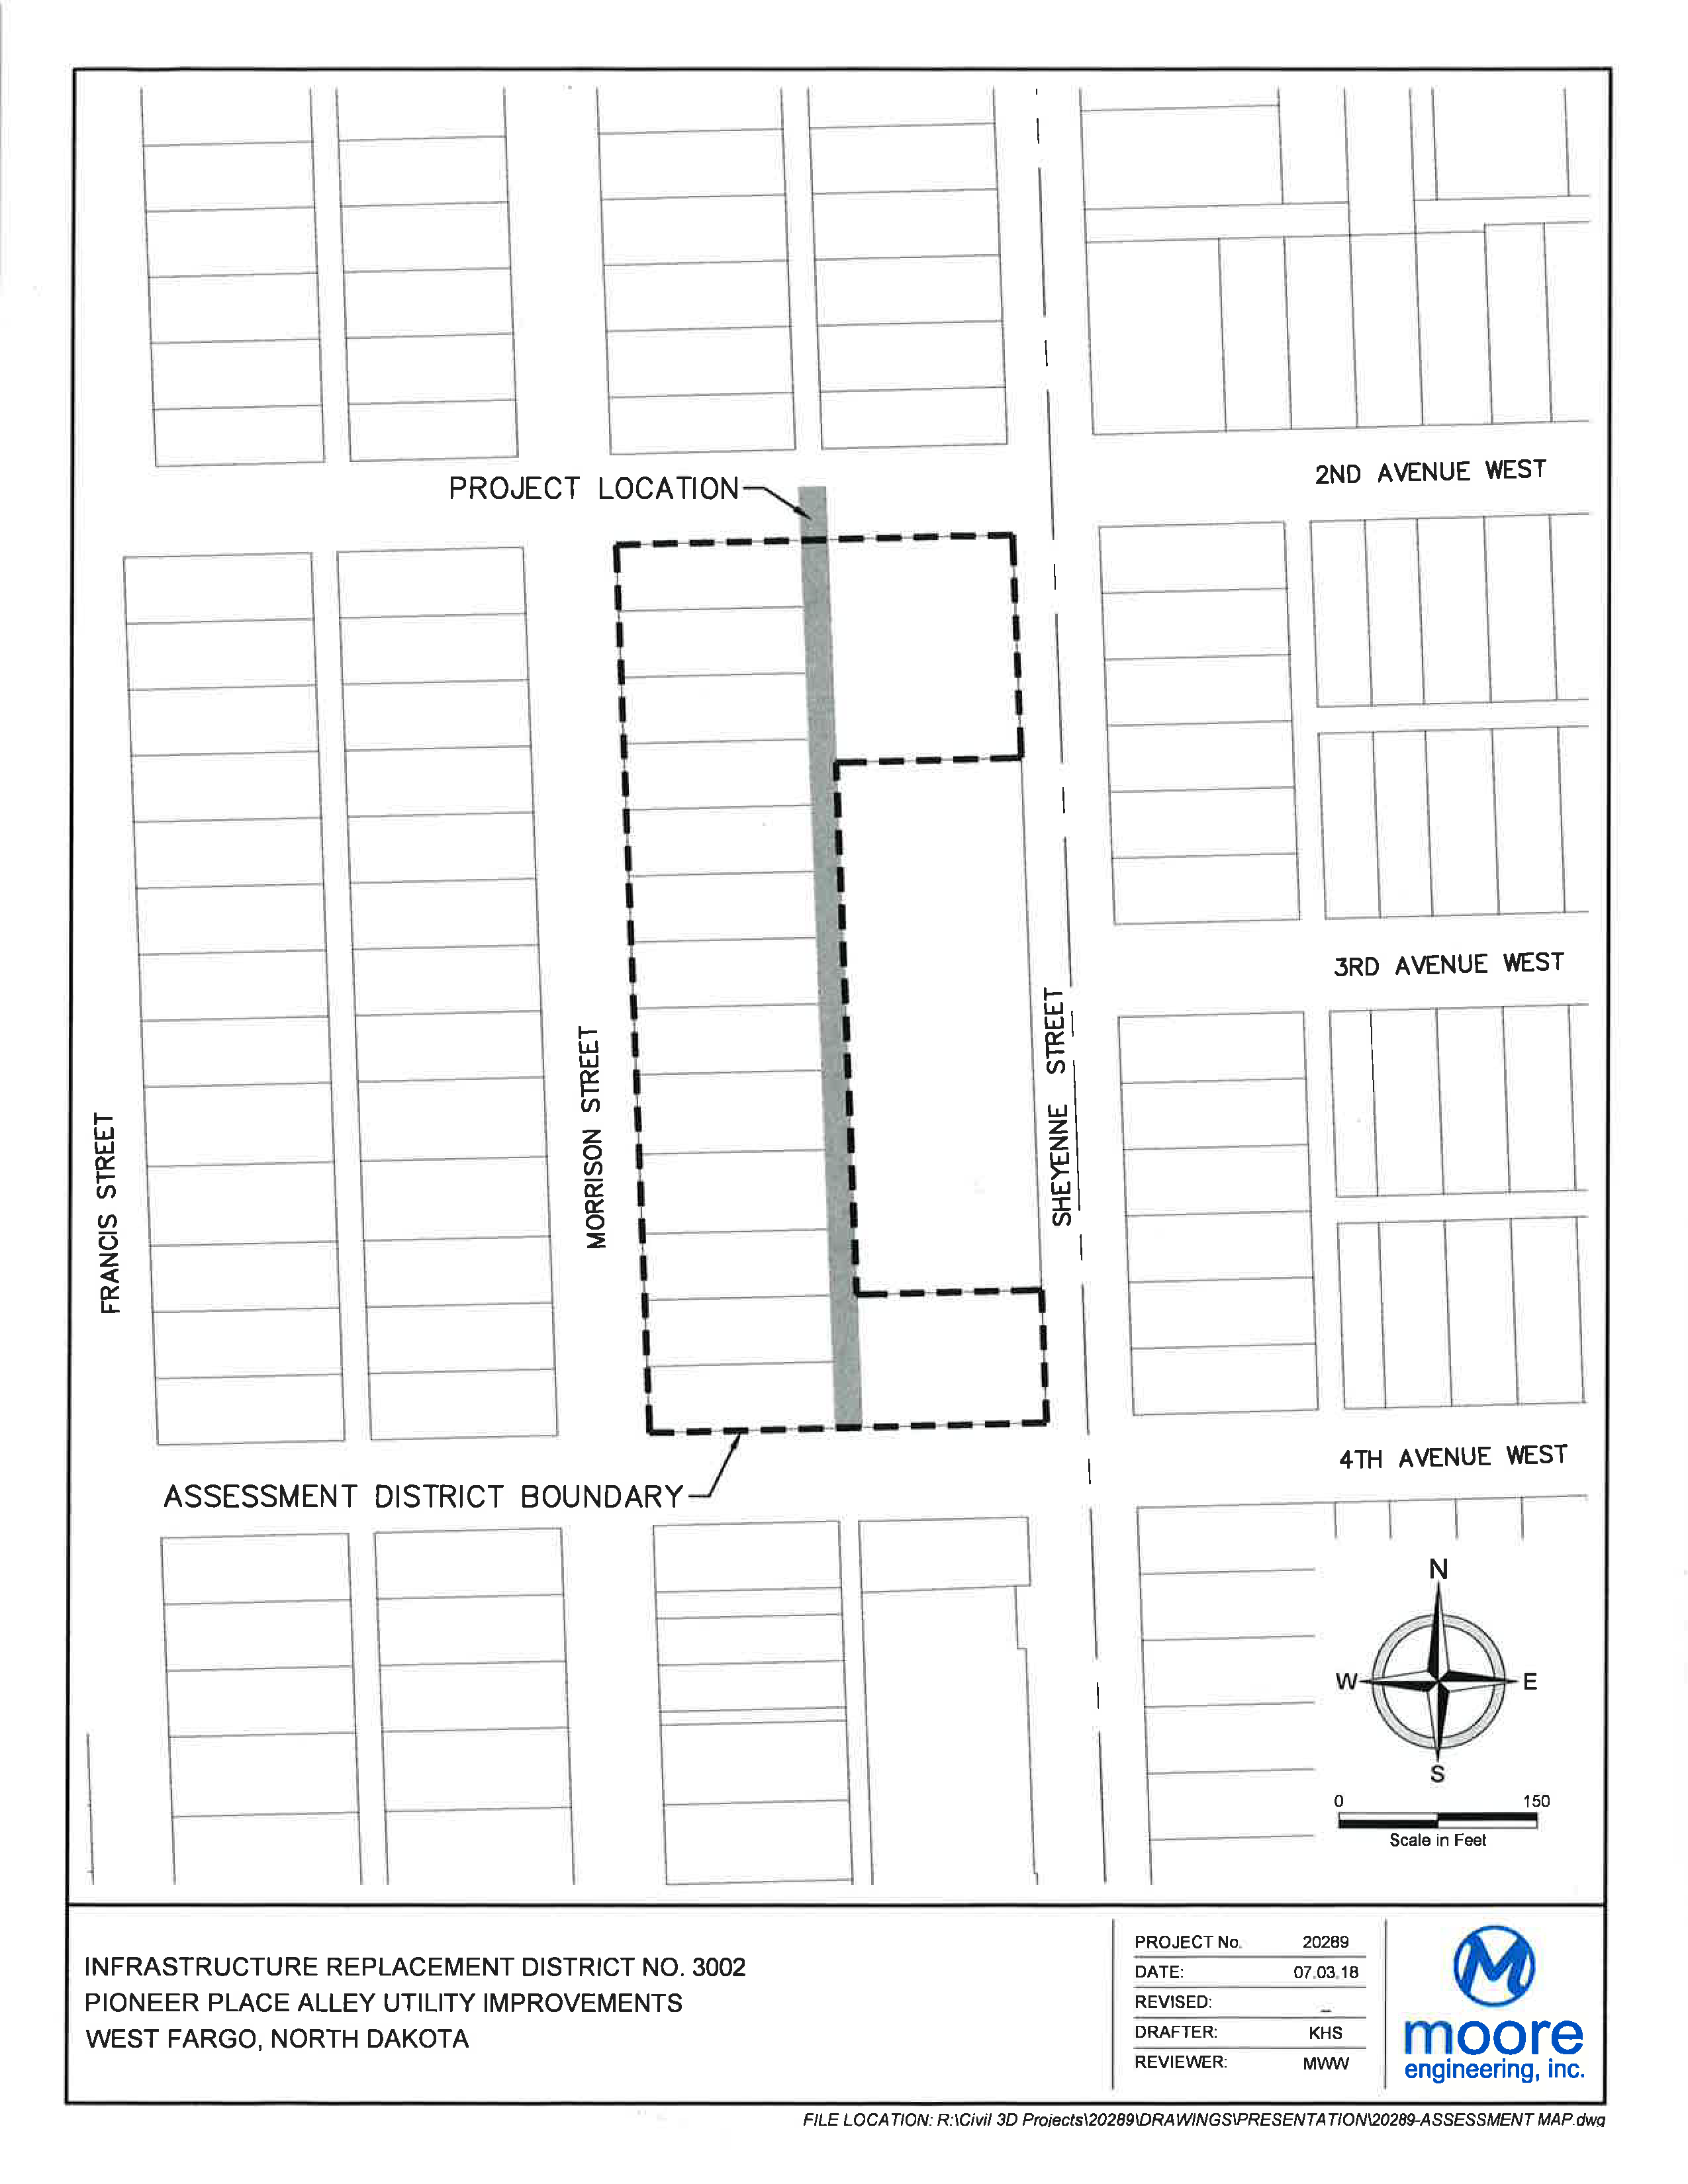 District No. 3002 Pioneer Place Alley Utility Improvements Assessment District Boundary Map